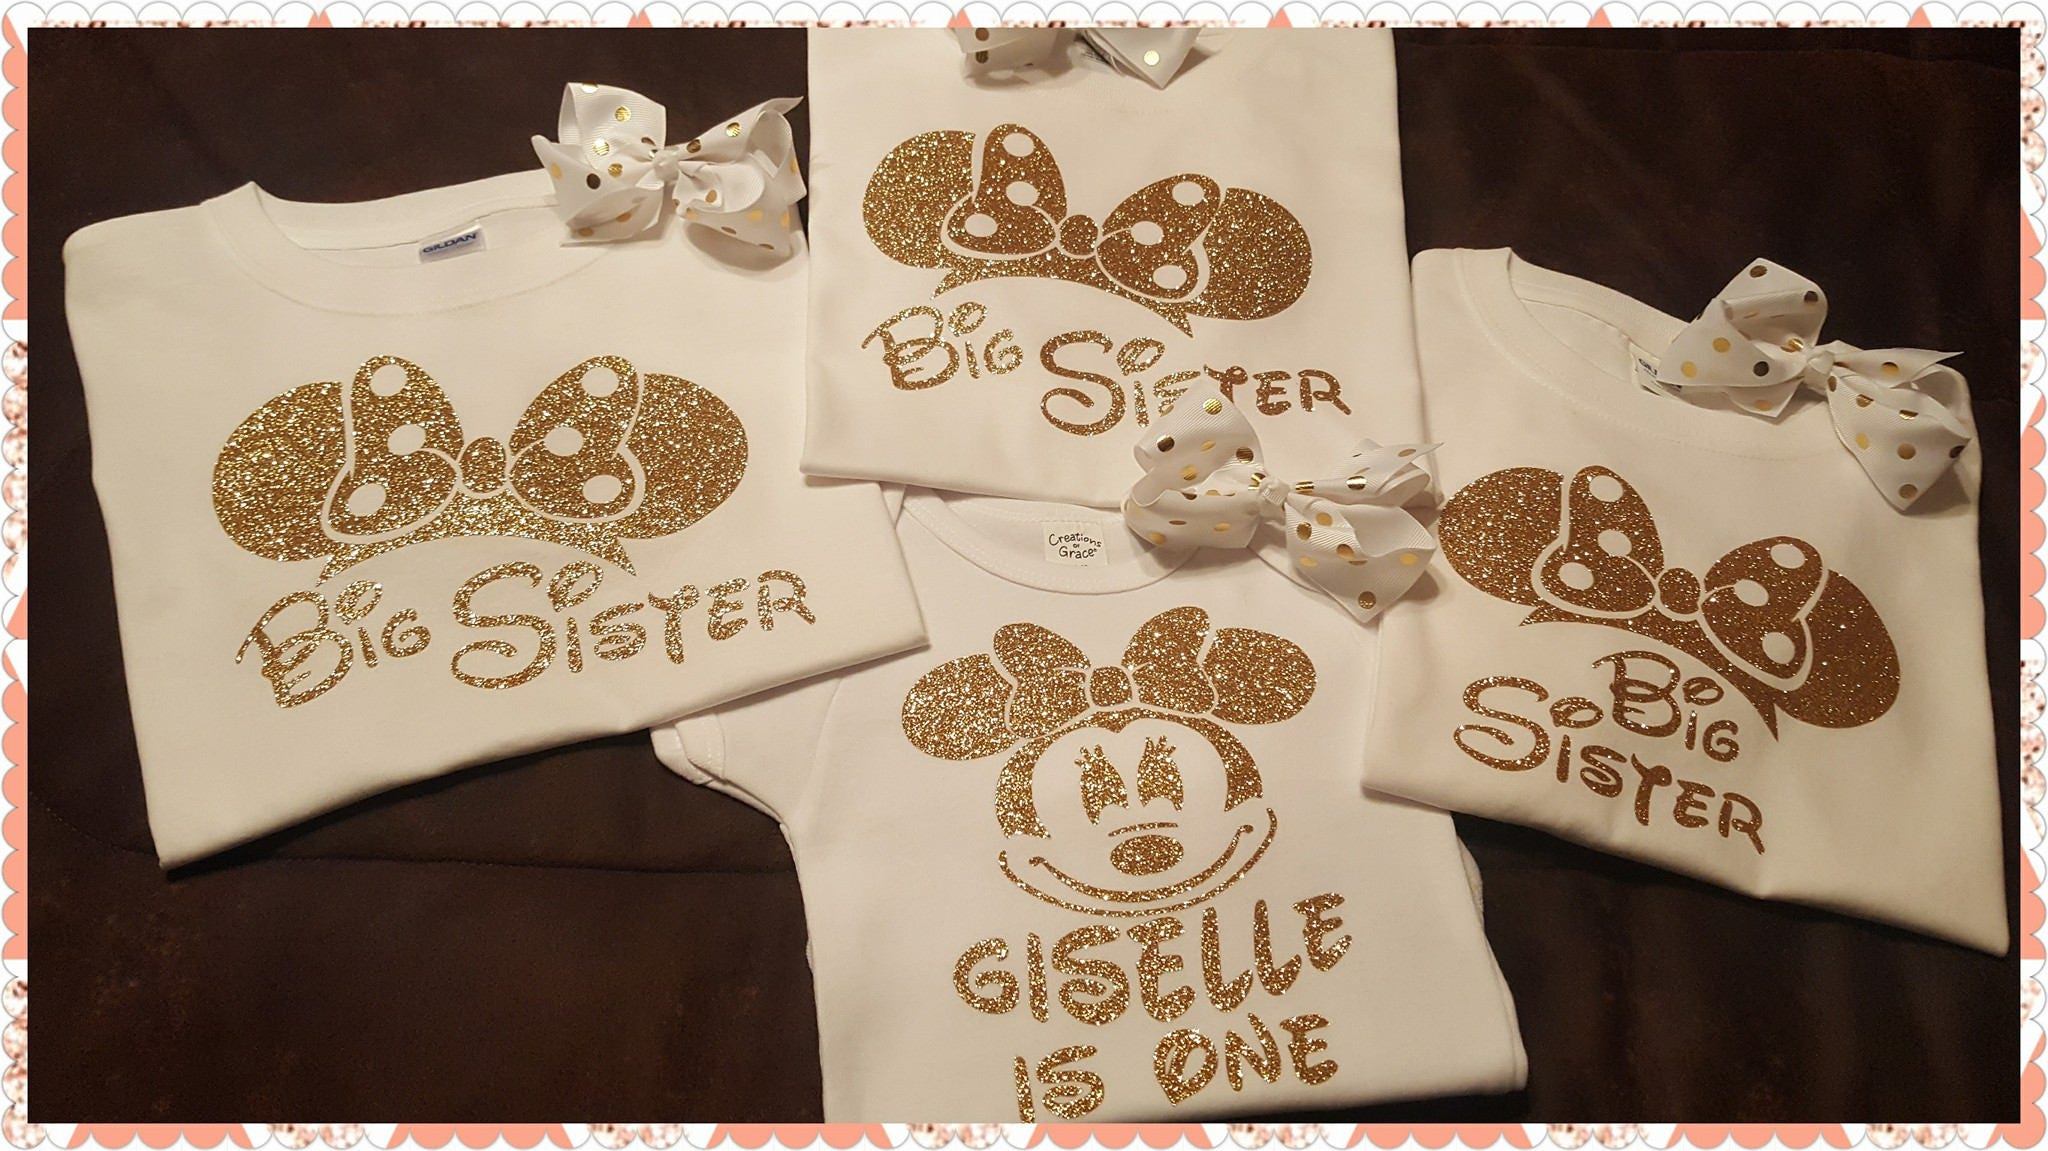 Minnie Mouse Birthday Shirt Or Onesie With Sibling Relative Shirts Set Mom Dad Sister Brother Granny Papa Uncle Etc